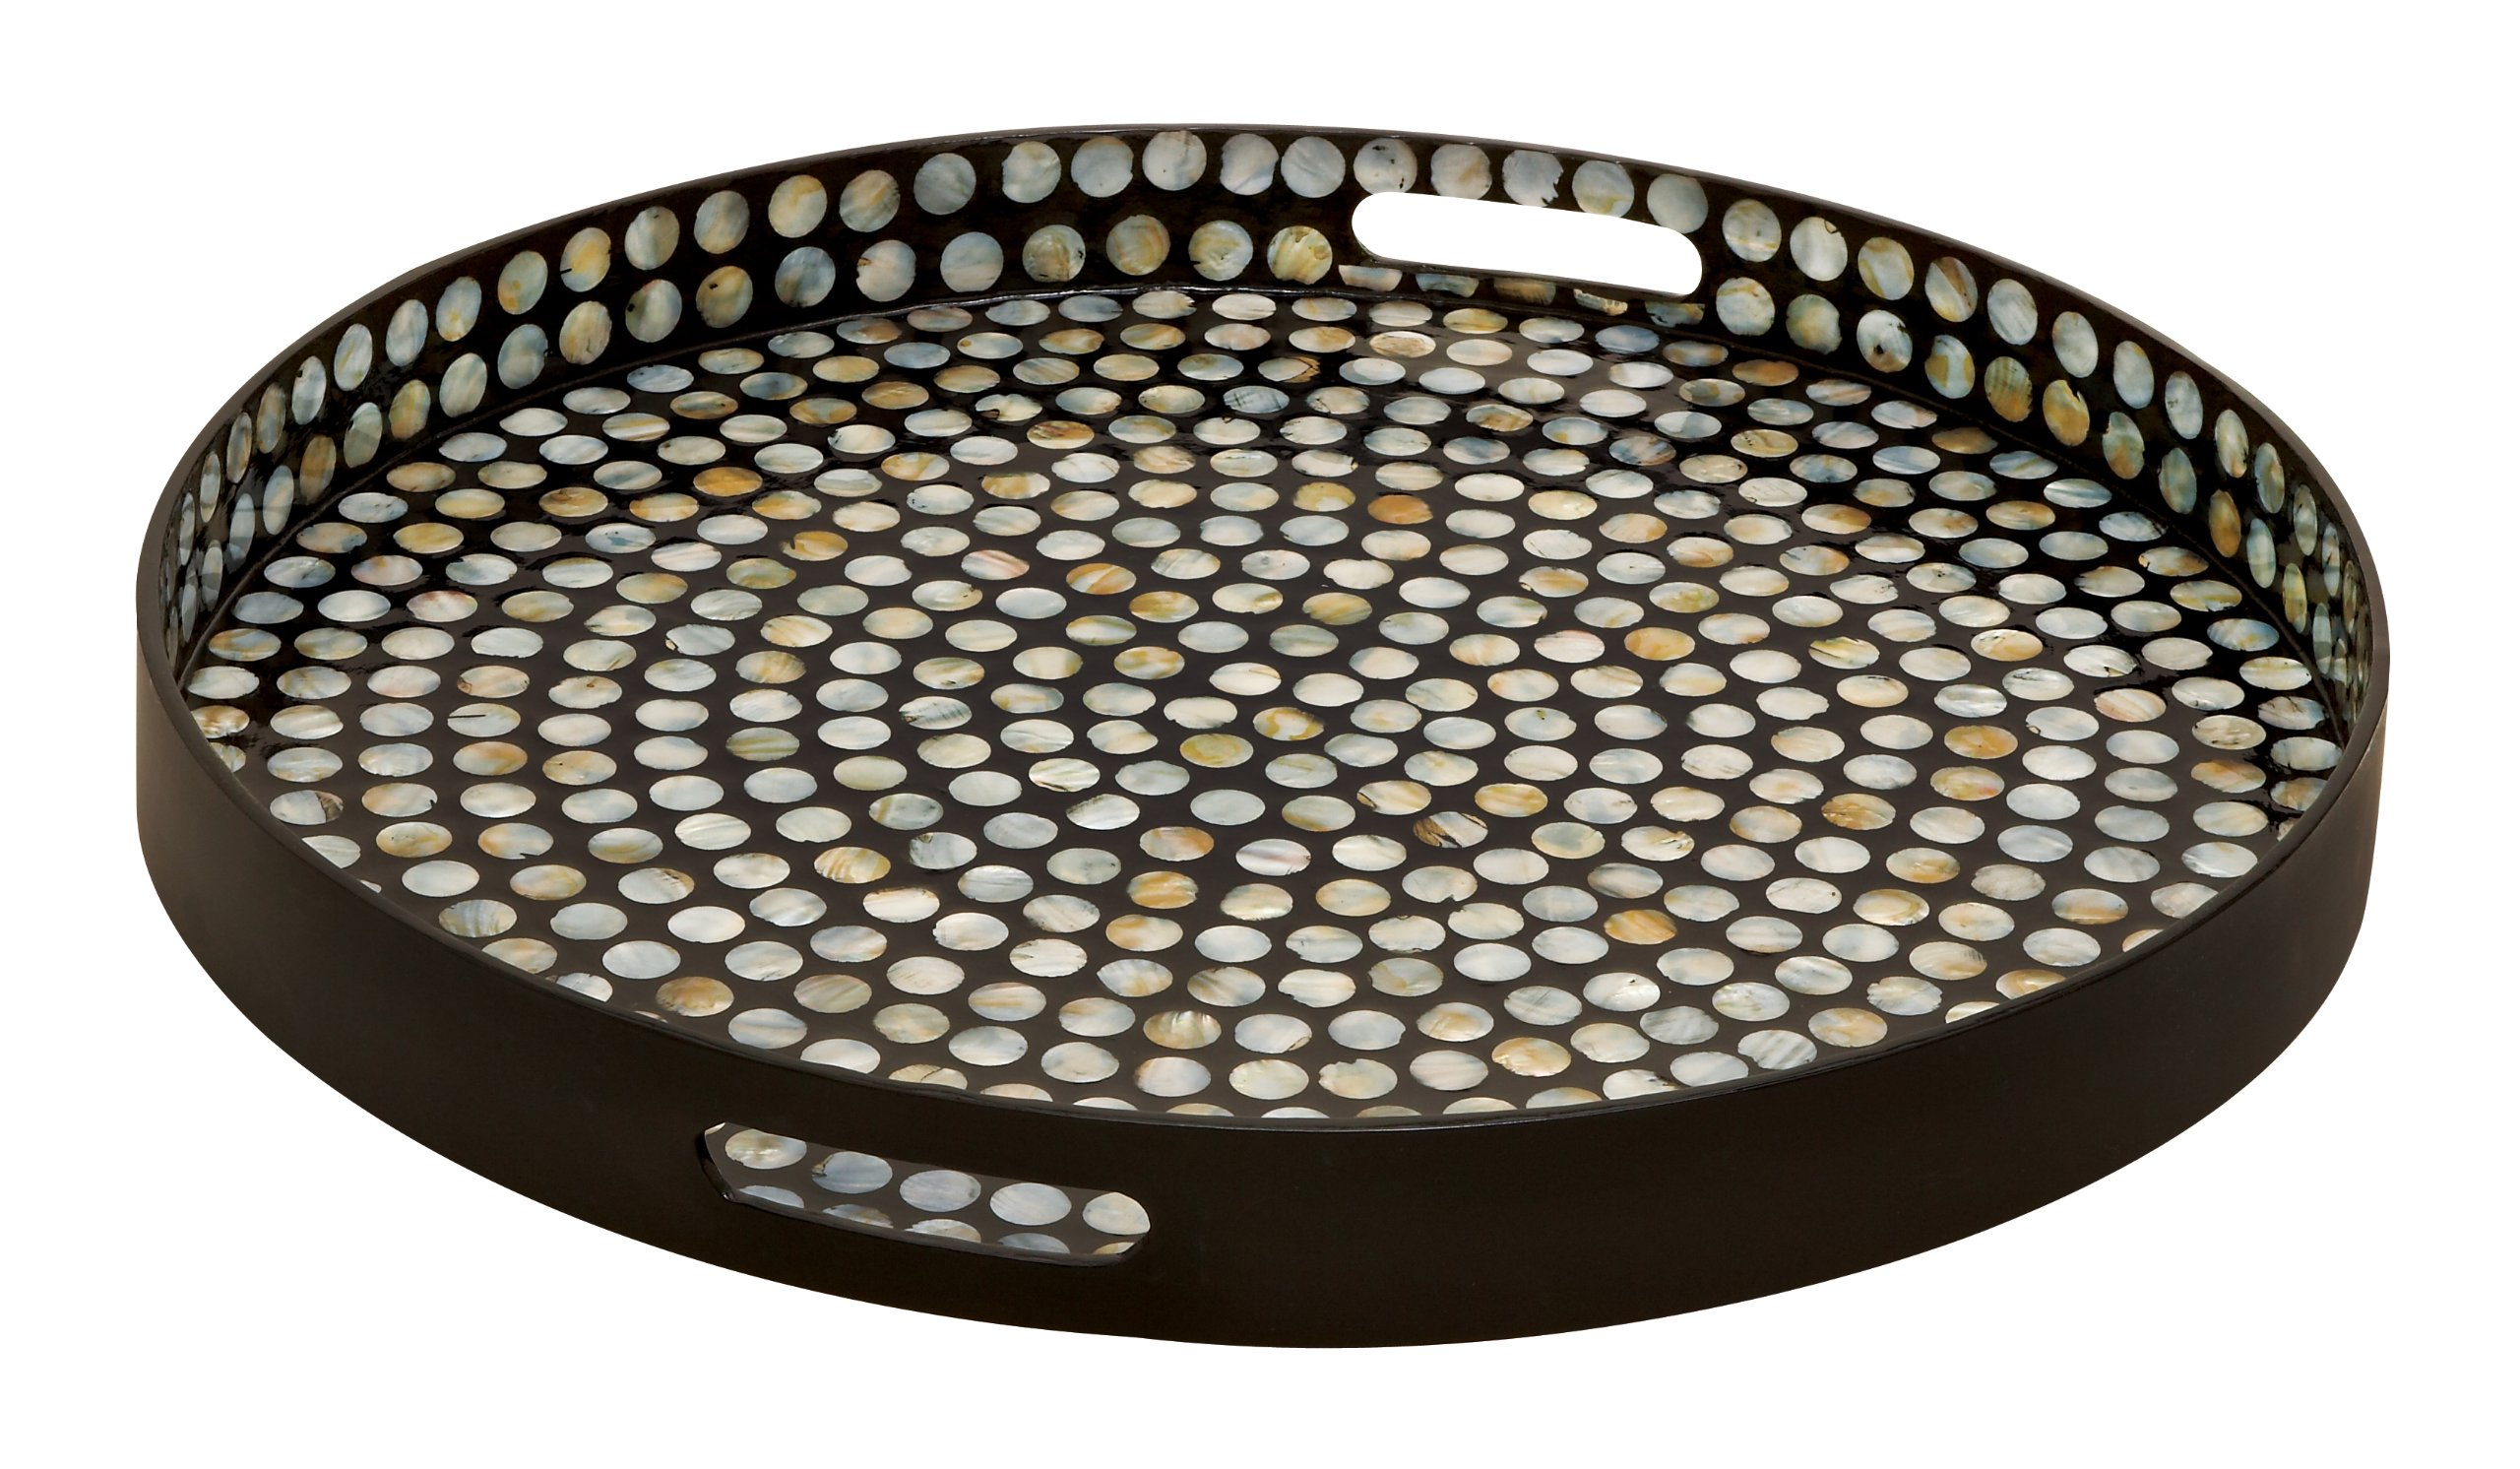 Deco 79 48931 Wood Lacquer Shell Tray, 24'' W x 3'' H